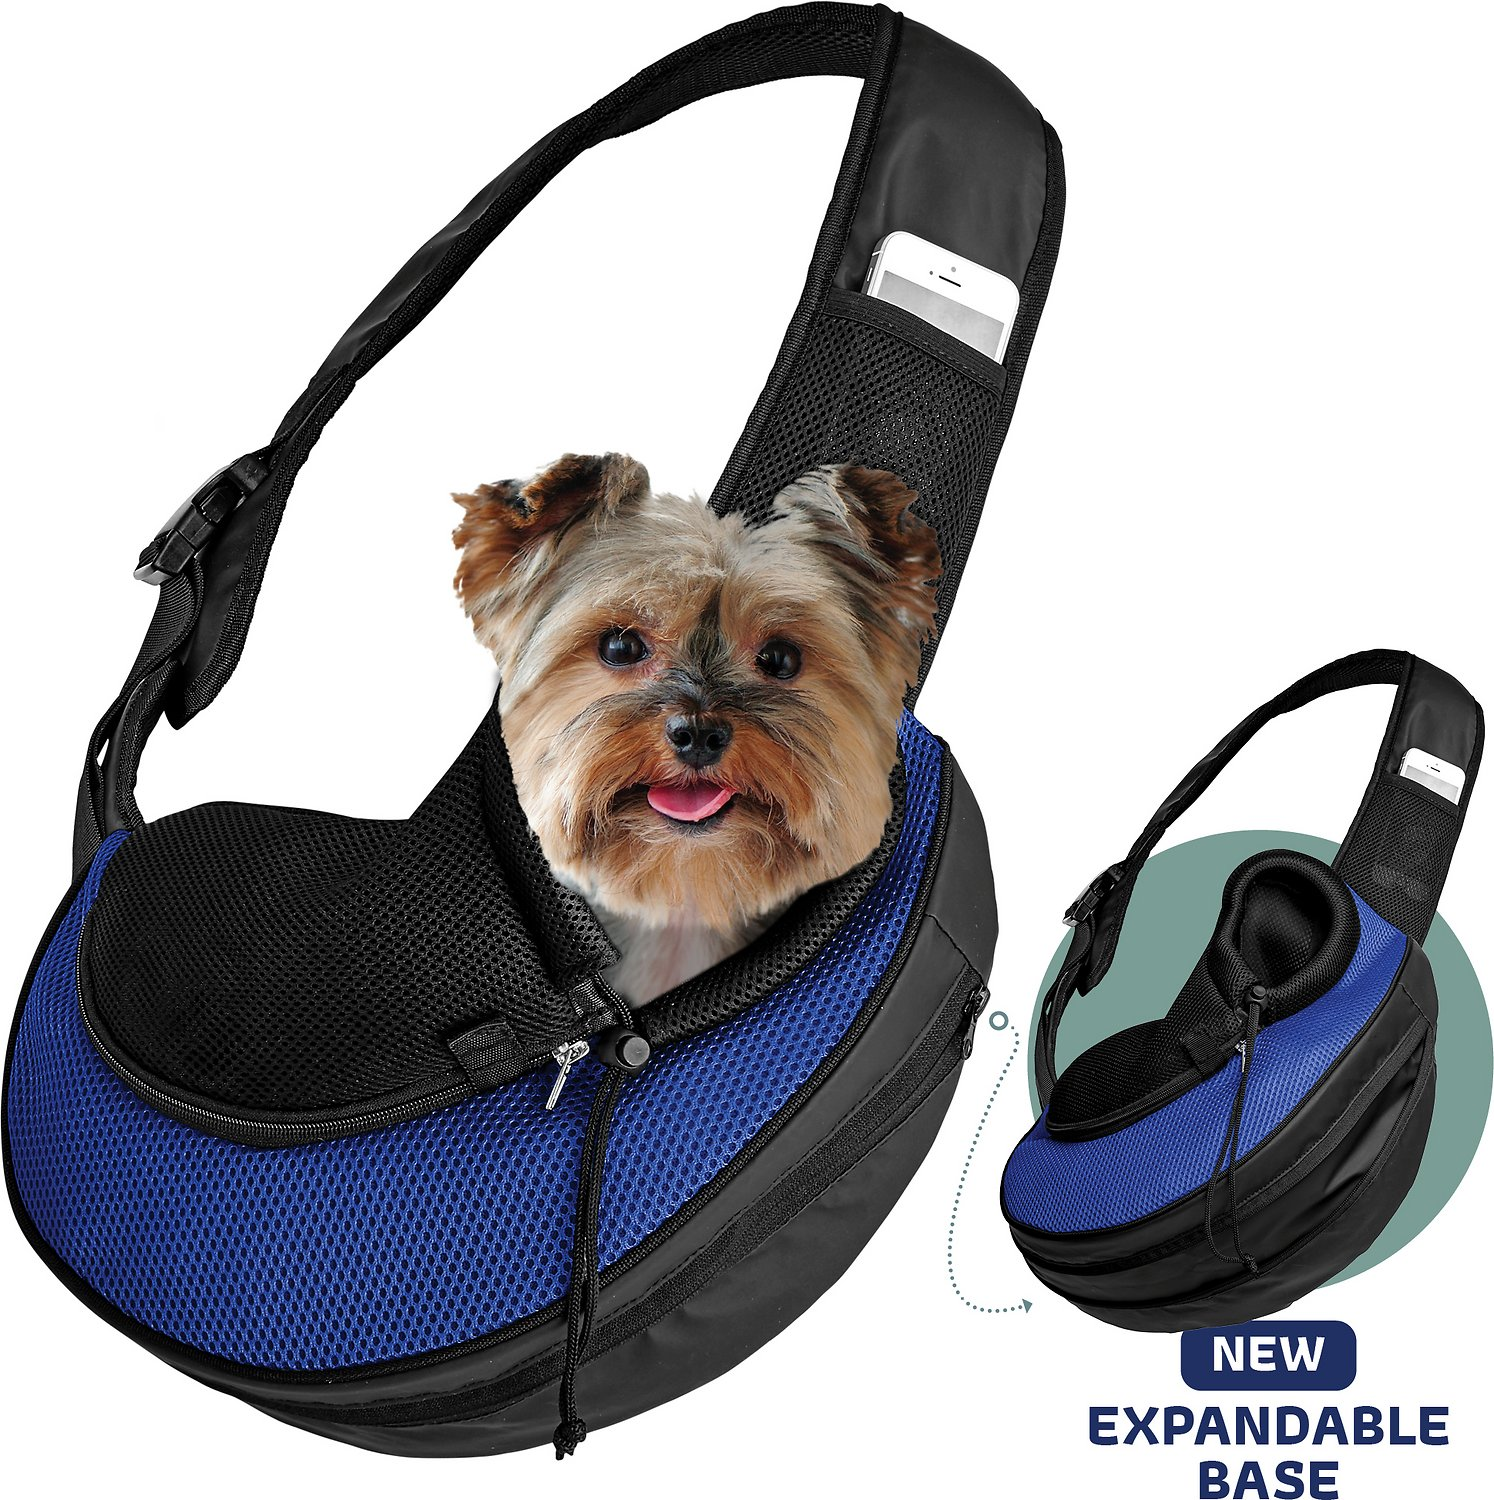 Collar clip add on to Pet sling carrier